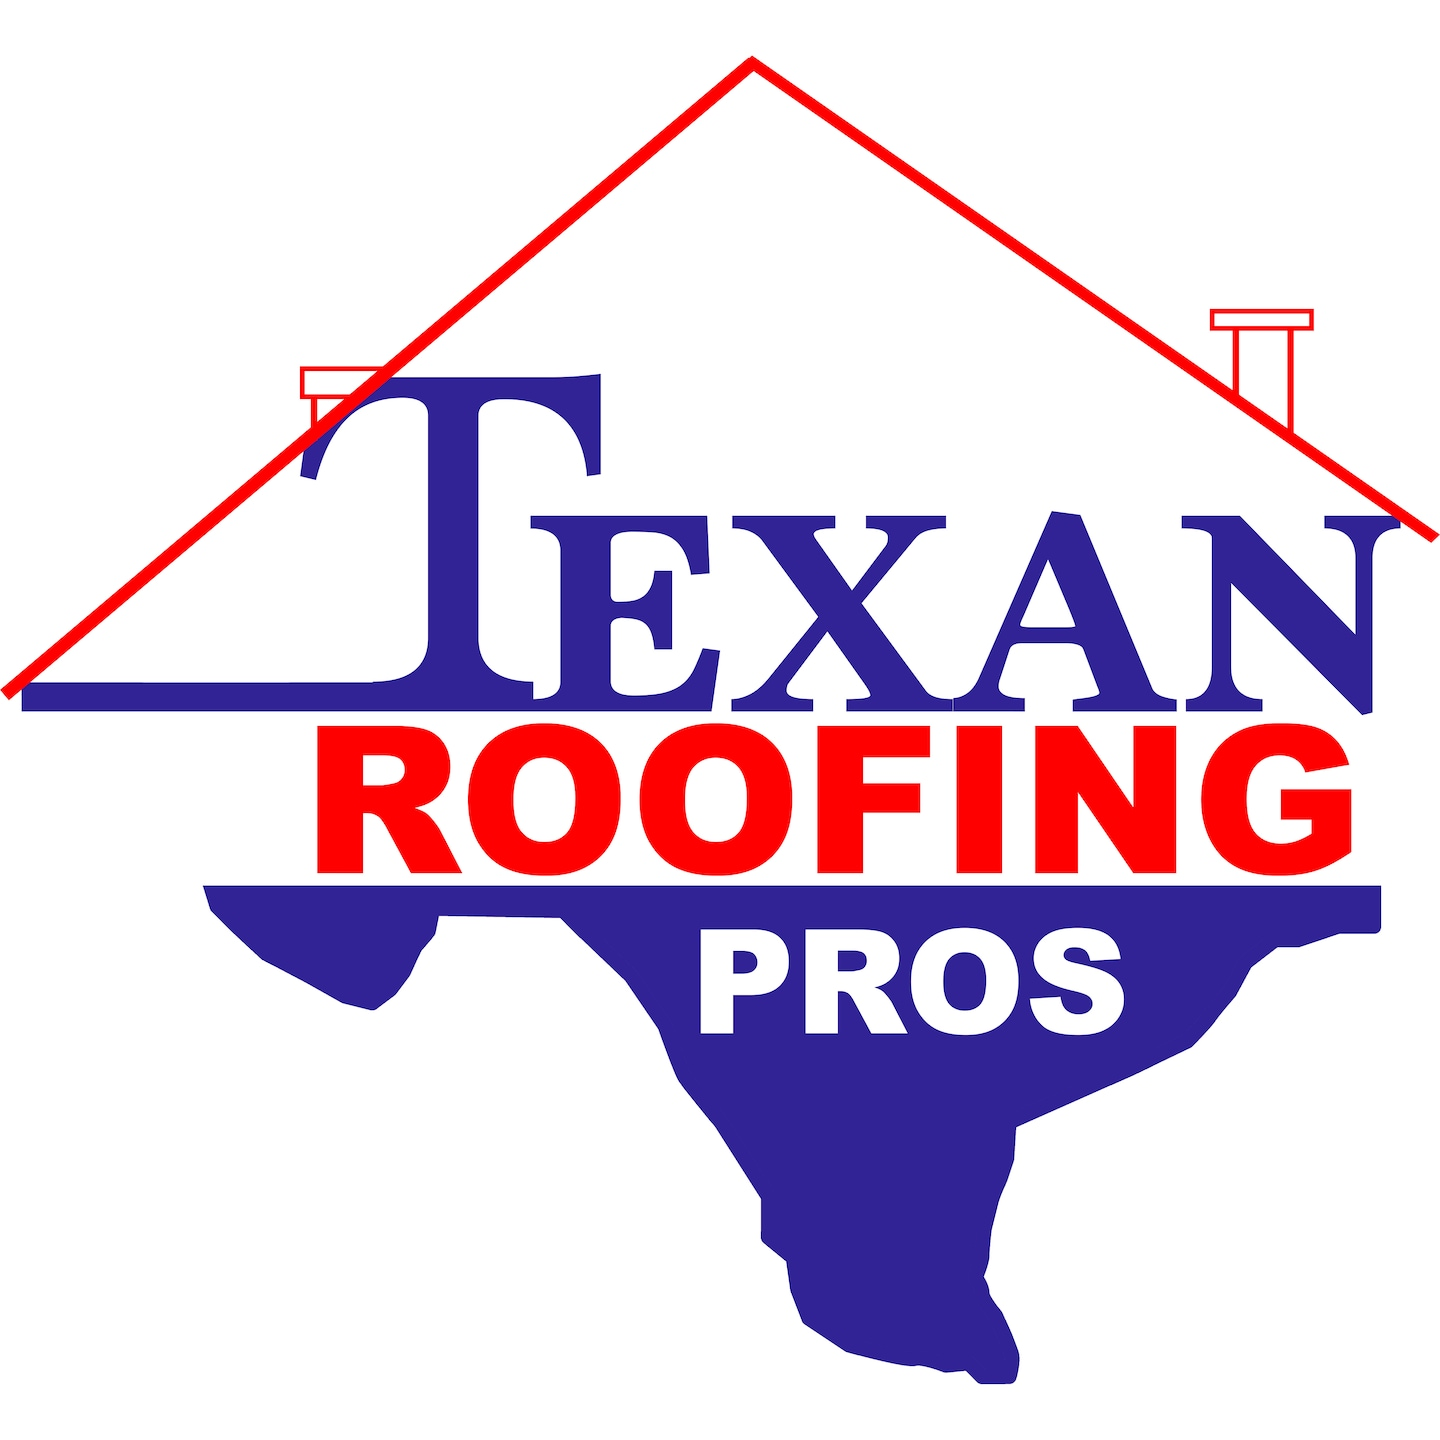 Texan Roofing Pros